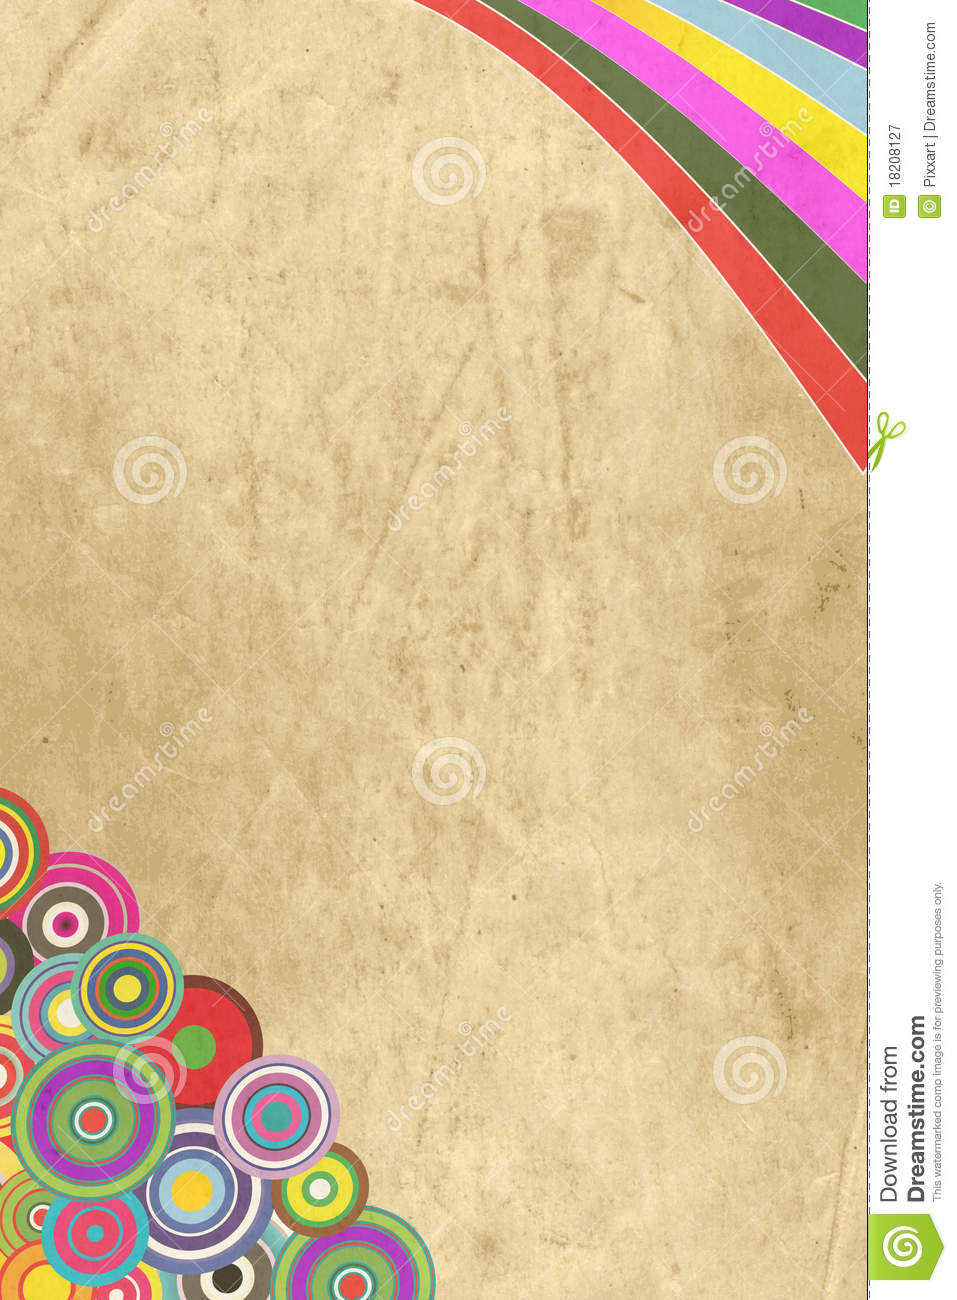 vintage decorative paper royalty free stock photography